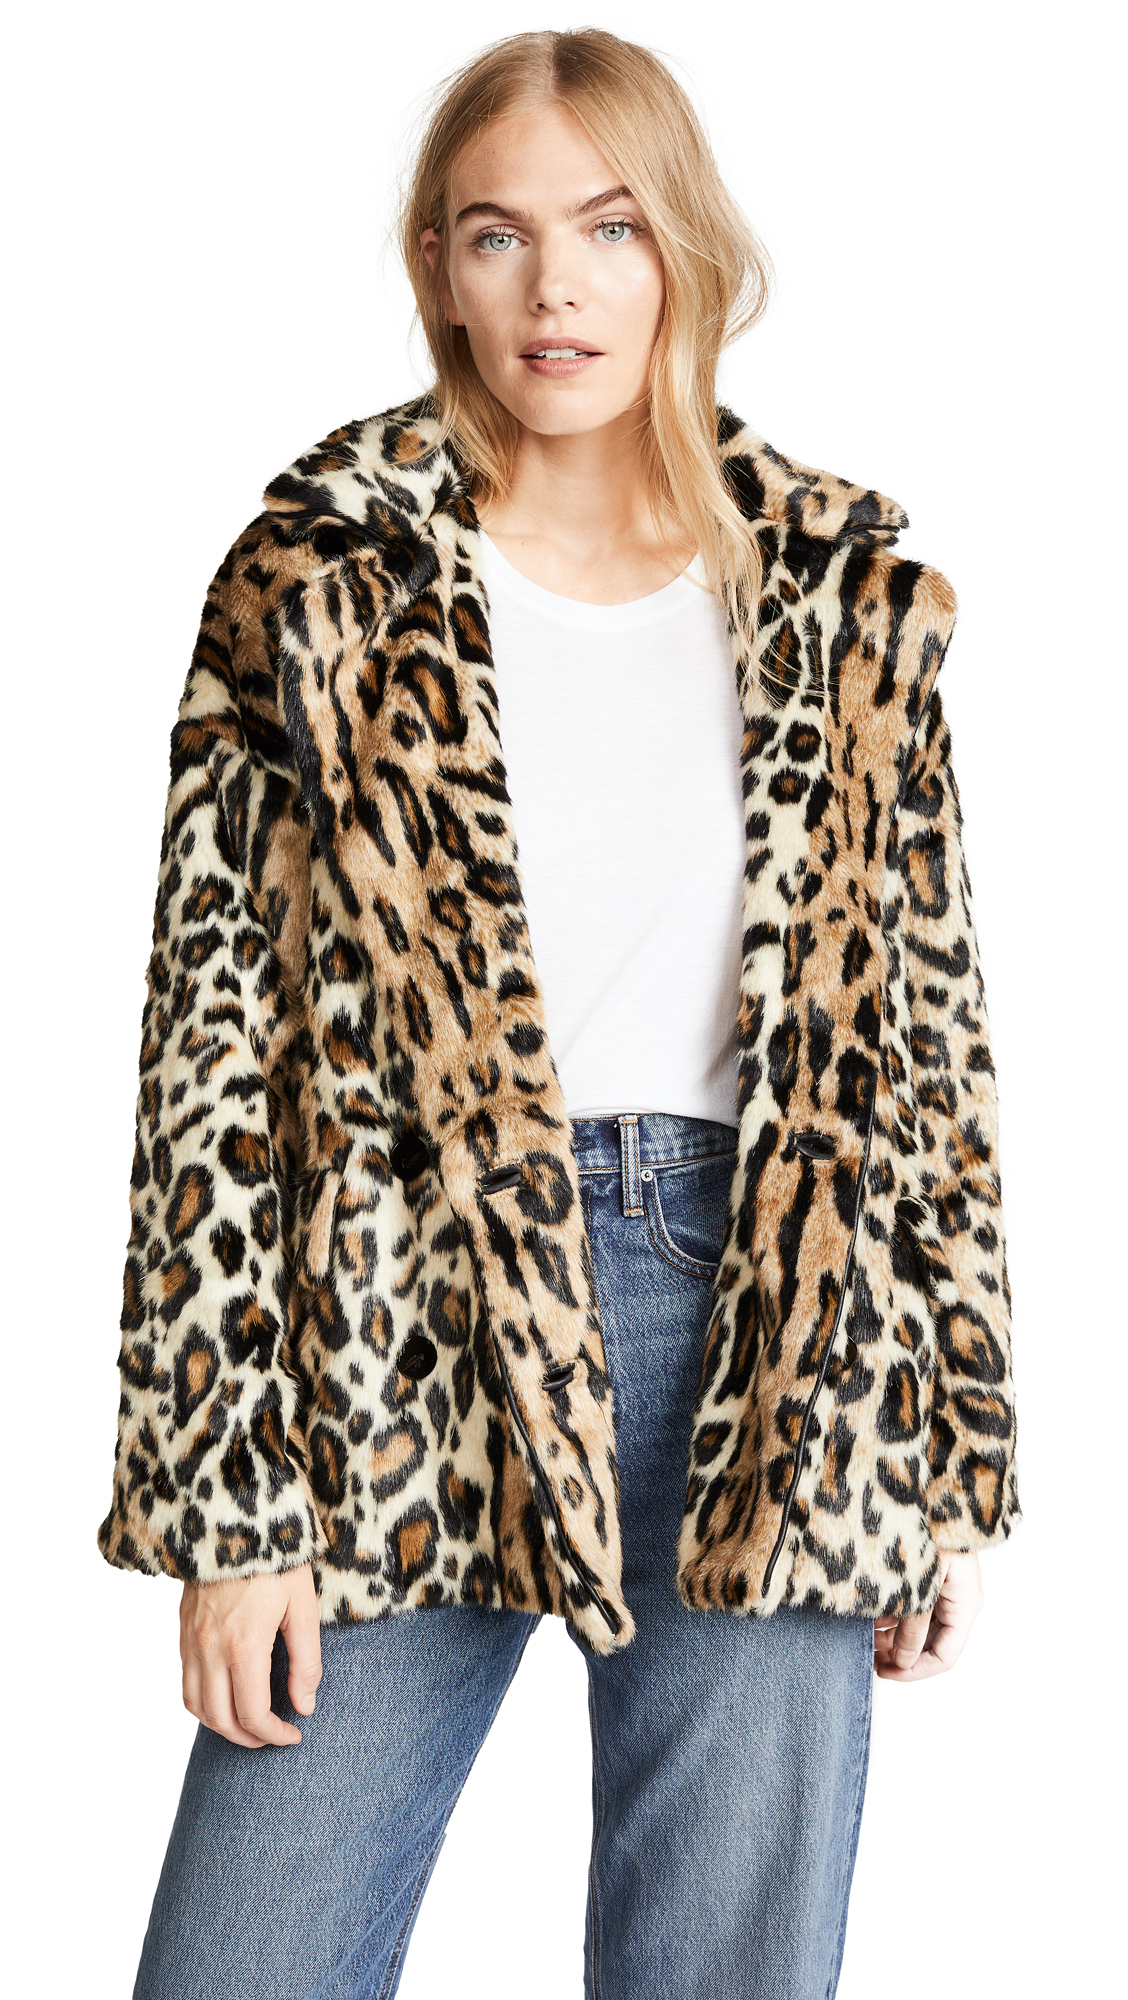 Free People Kate Leopard Coat - Brown Combo